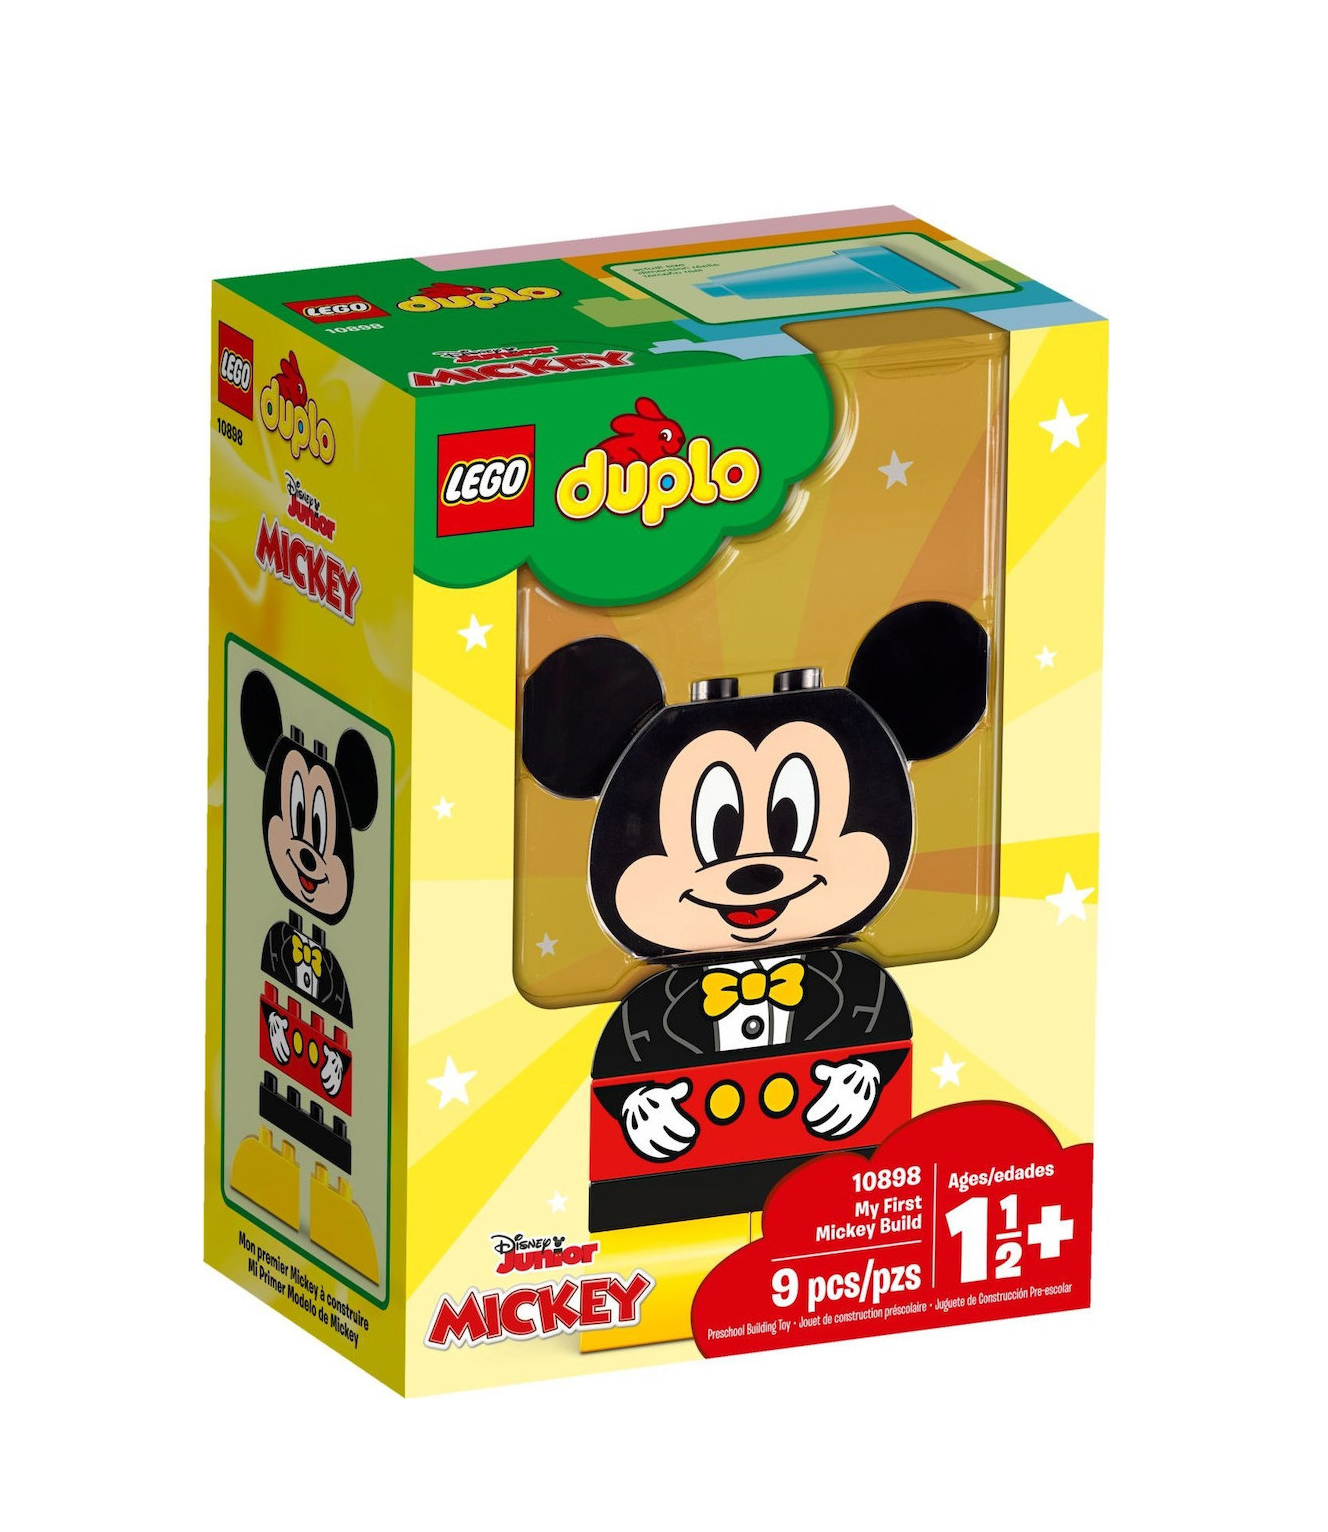 Lego Duplo: My First Mickey Build 10898